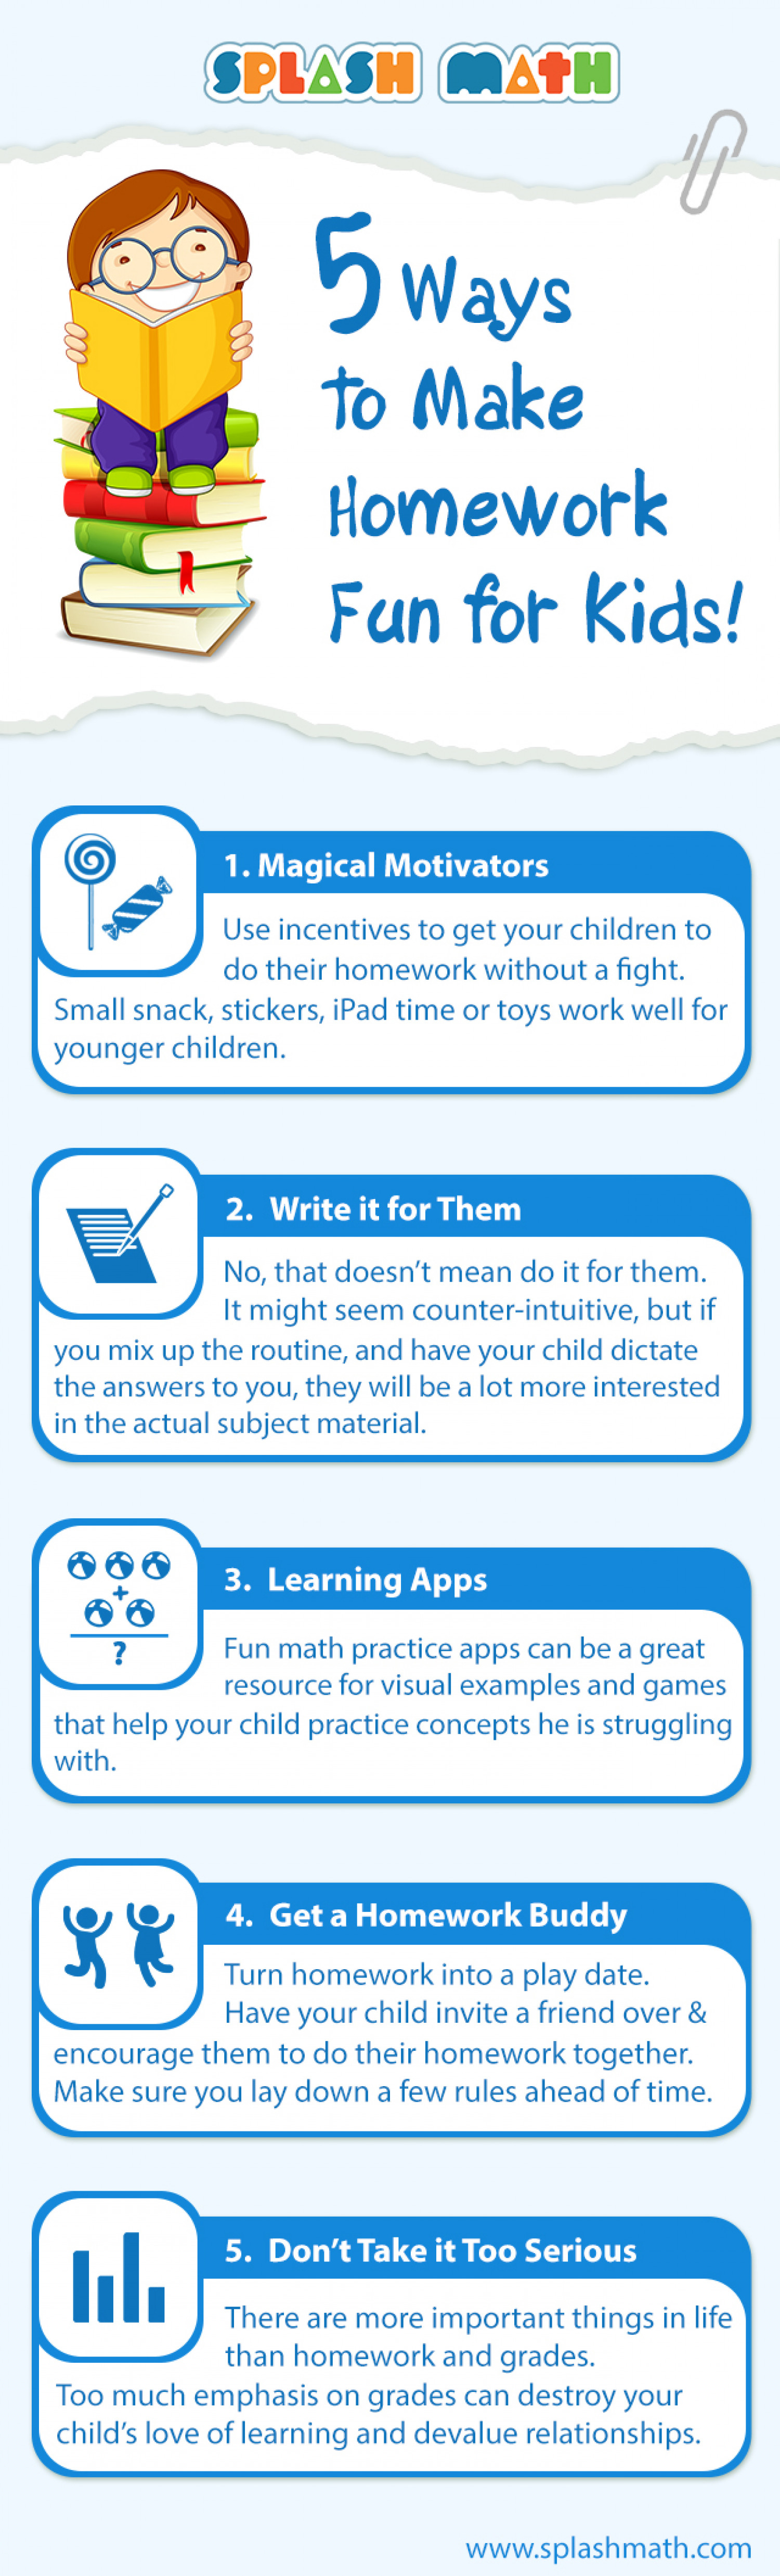 5 Ways to Make Homework Fun for Kids Infographic